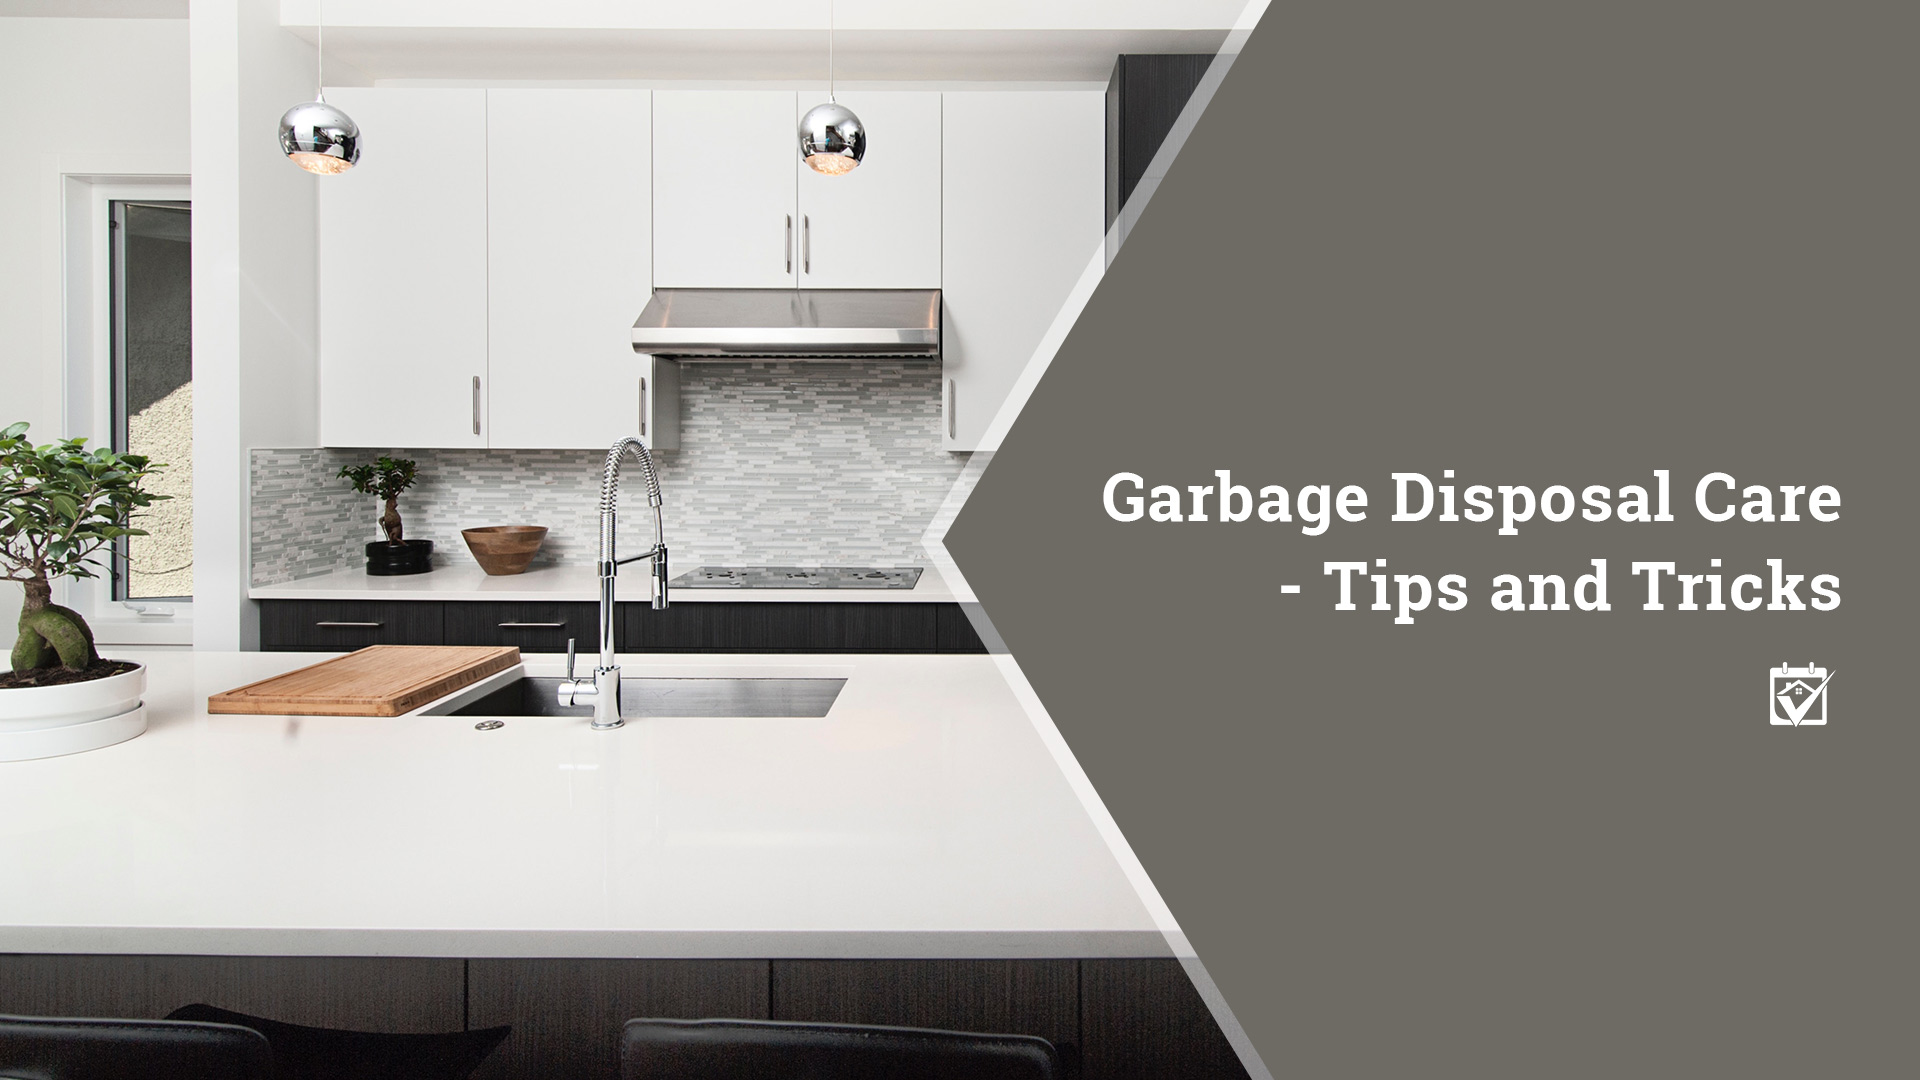 garbage-disposal-tips-and-tricks.jpg